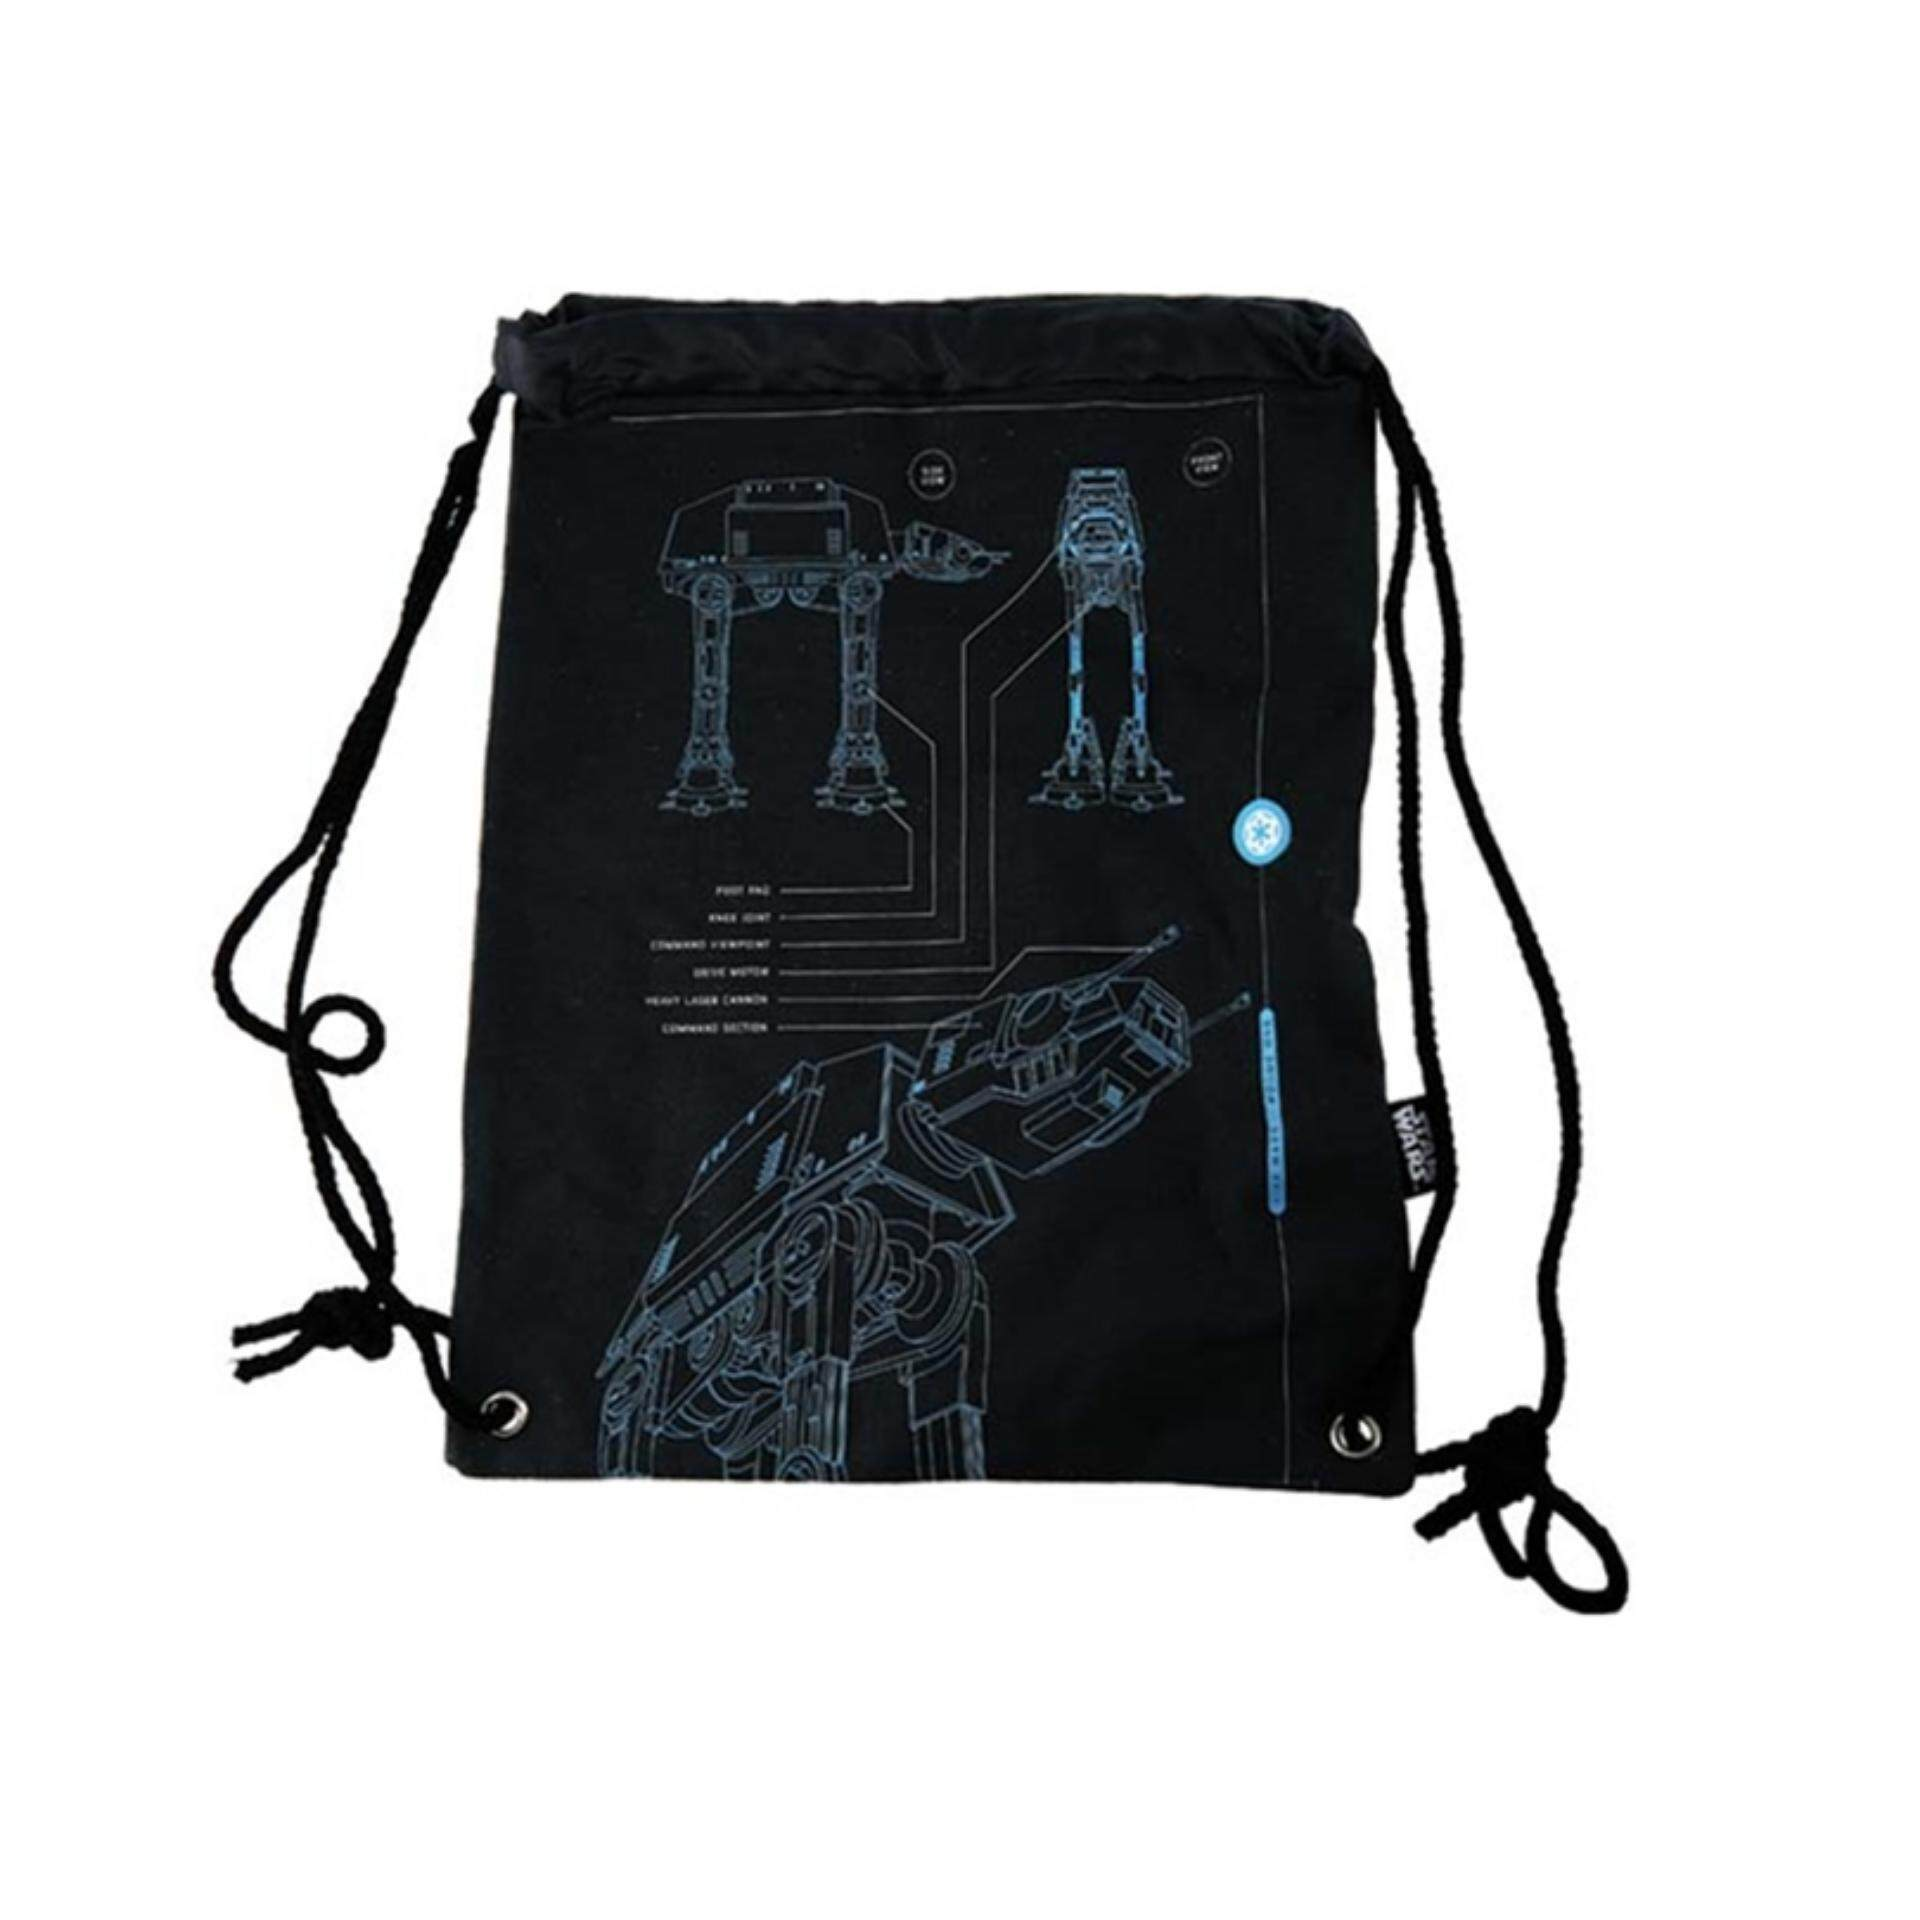 Disney Star Wars Rogue One Drawstring Bag - AT-AT